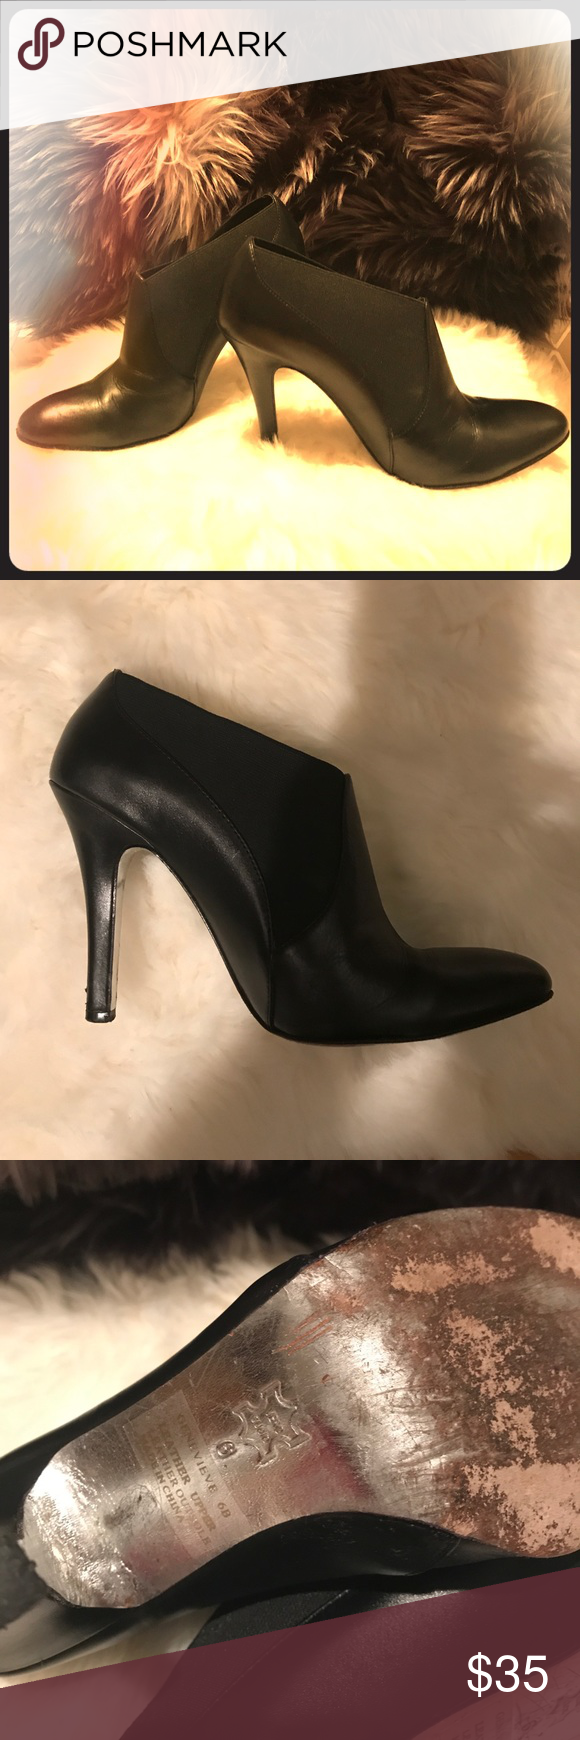 Bebe Black Shoe Boots Size 6 Black Bebe Shoe Boots Size 6 Minor Wear To Shoes See Pictures Heels And Souls Leather Upper Black Shoe Boots Shoe Boots Shoes